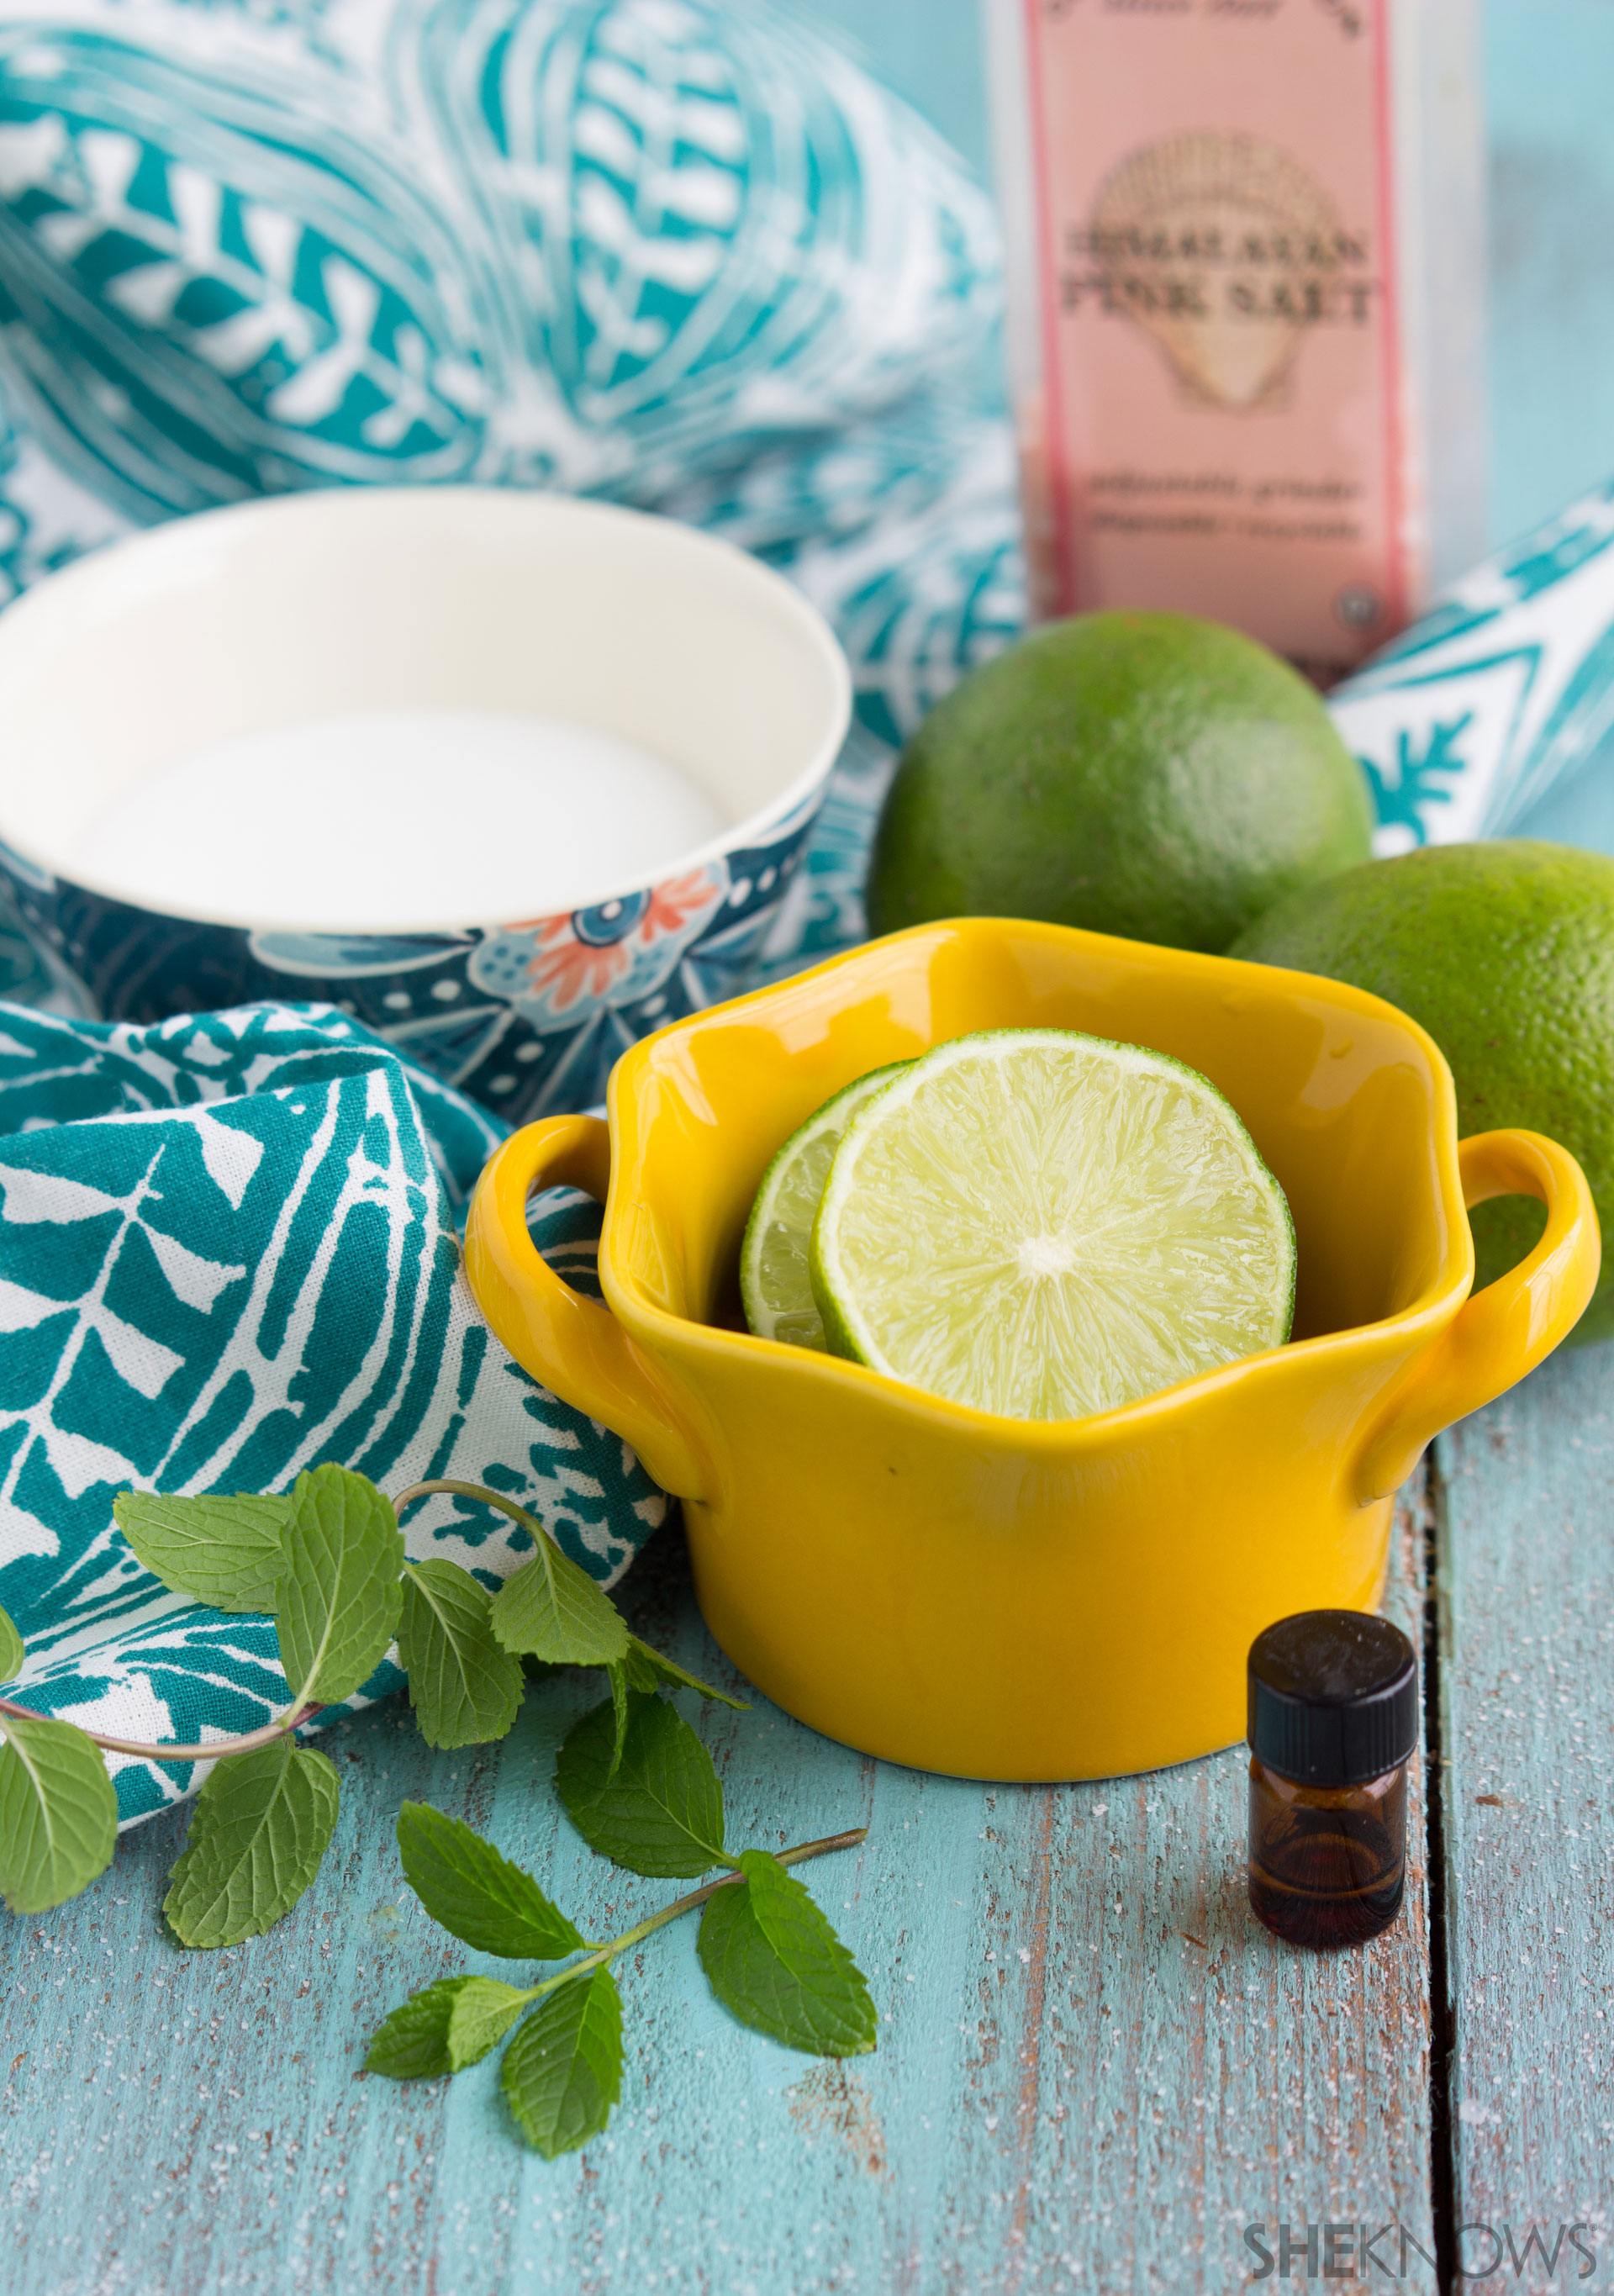 Mojito-Inspired face scrub ingredients